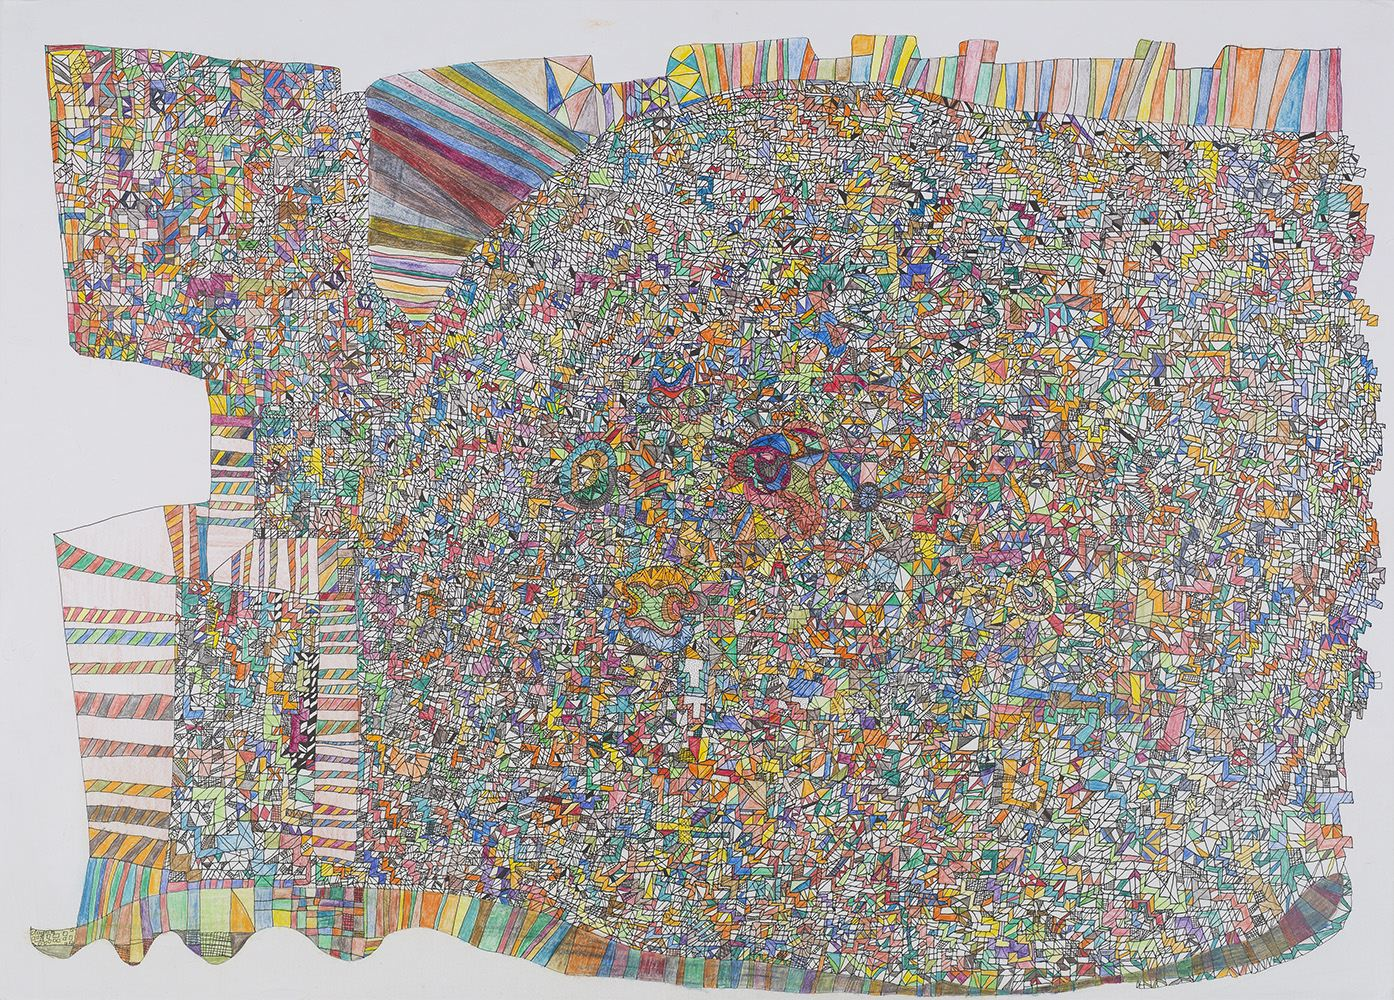 Paul Kai Schröder,   Untitled  , 2014,Crayon and ink on paper,19.5 x 27.5 inches,49.5 x 69.9 cm,PKS 1